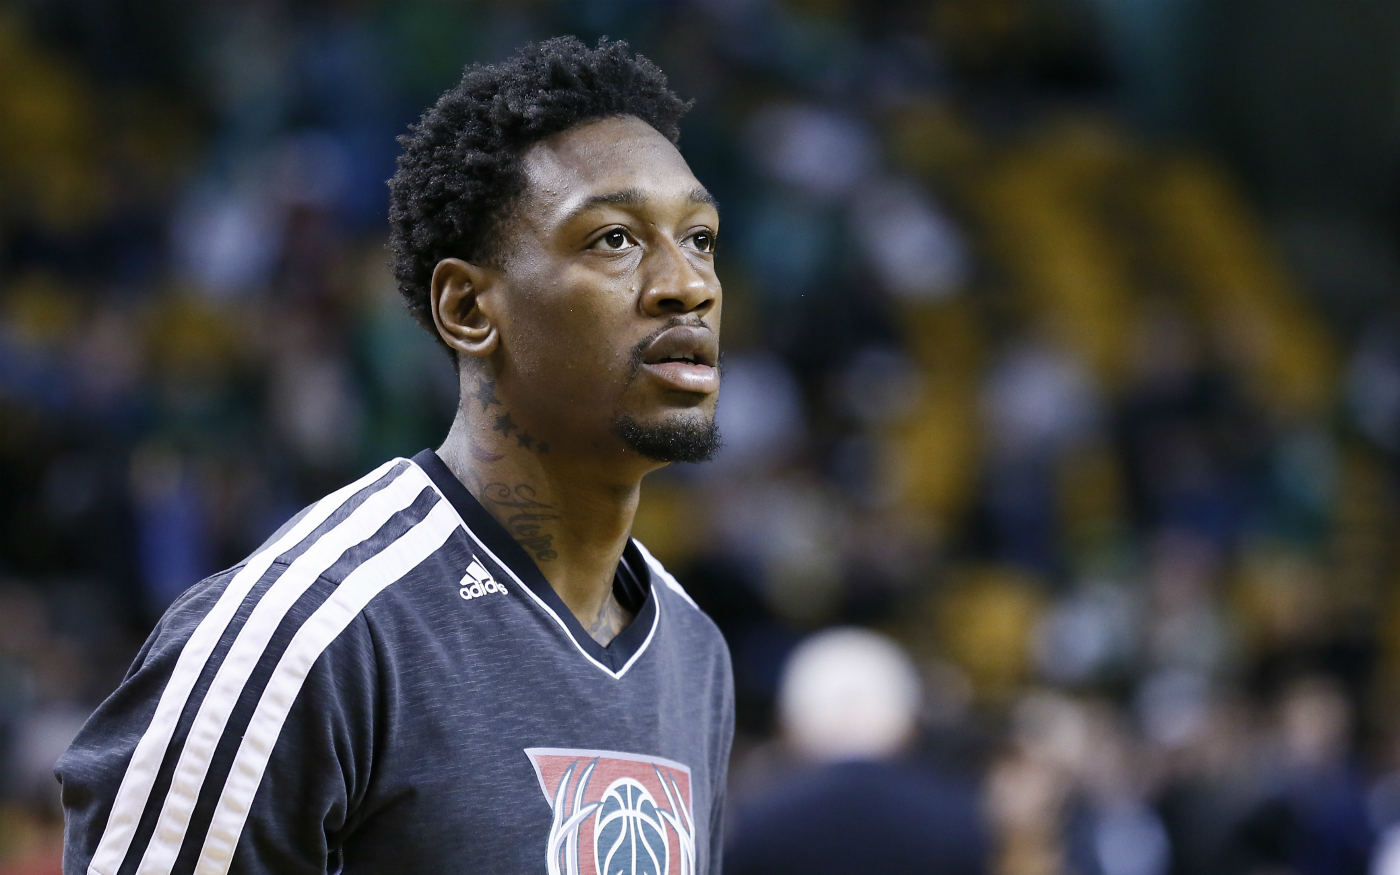 Larry Sanders de retour en NBA avant le All-Star Break ?